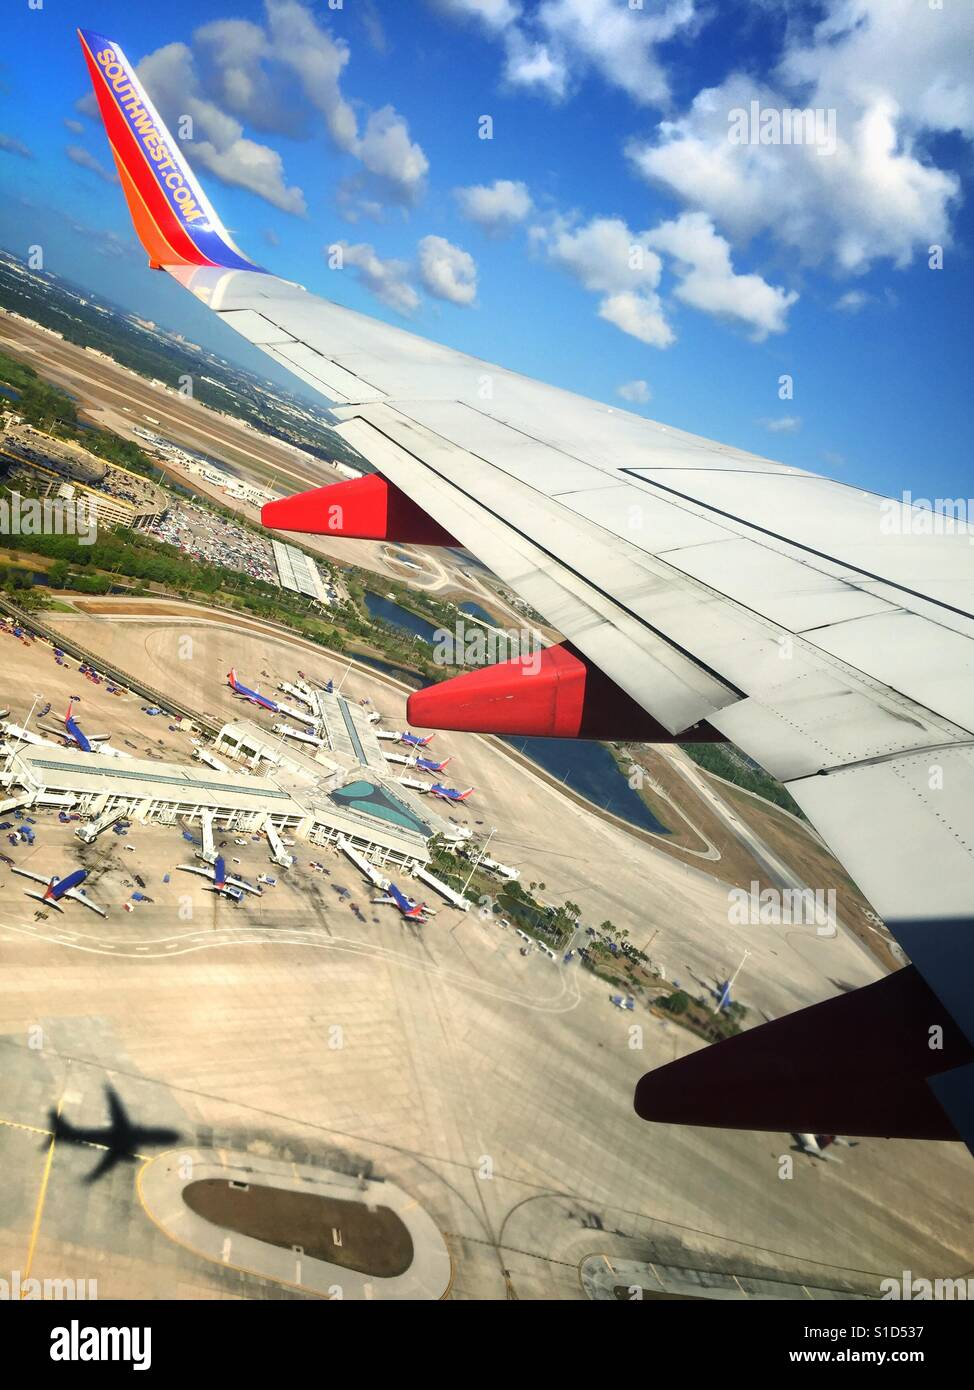 A photo of an airport and  a plane's shadow as it takes off on a bright, sunny day. - Stock Image